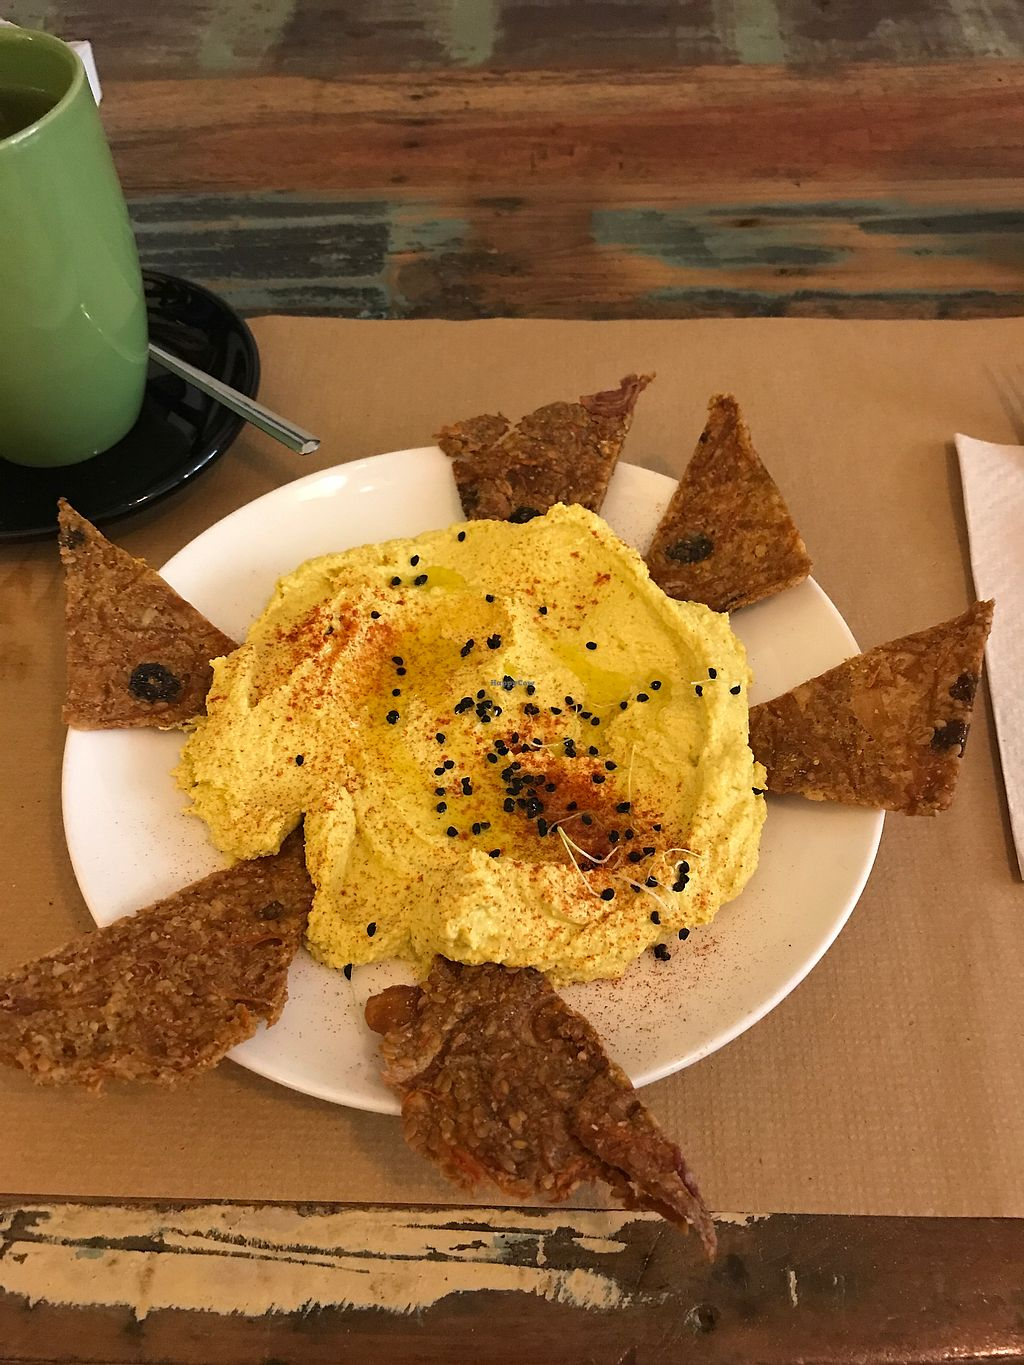 """Photo of El Cafe Blueproject  by <a href=""""/members/profile/JFlah"""">JFlah</a> <br/>raw hummus and chips <br/> August 8, 2017  - <a href='/contact/abuse/image/42332/290420'>Report</a>"""